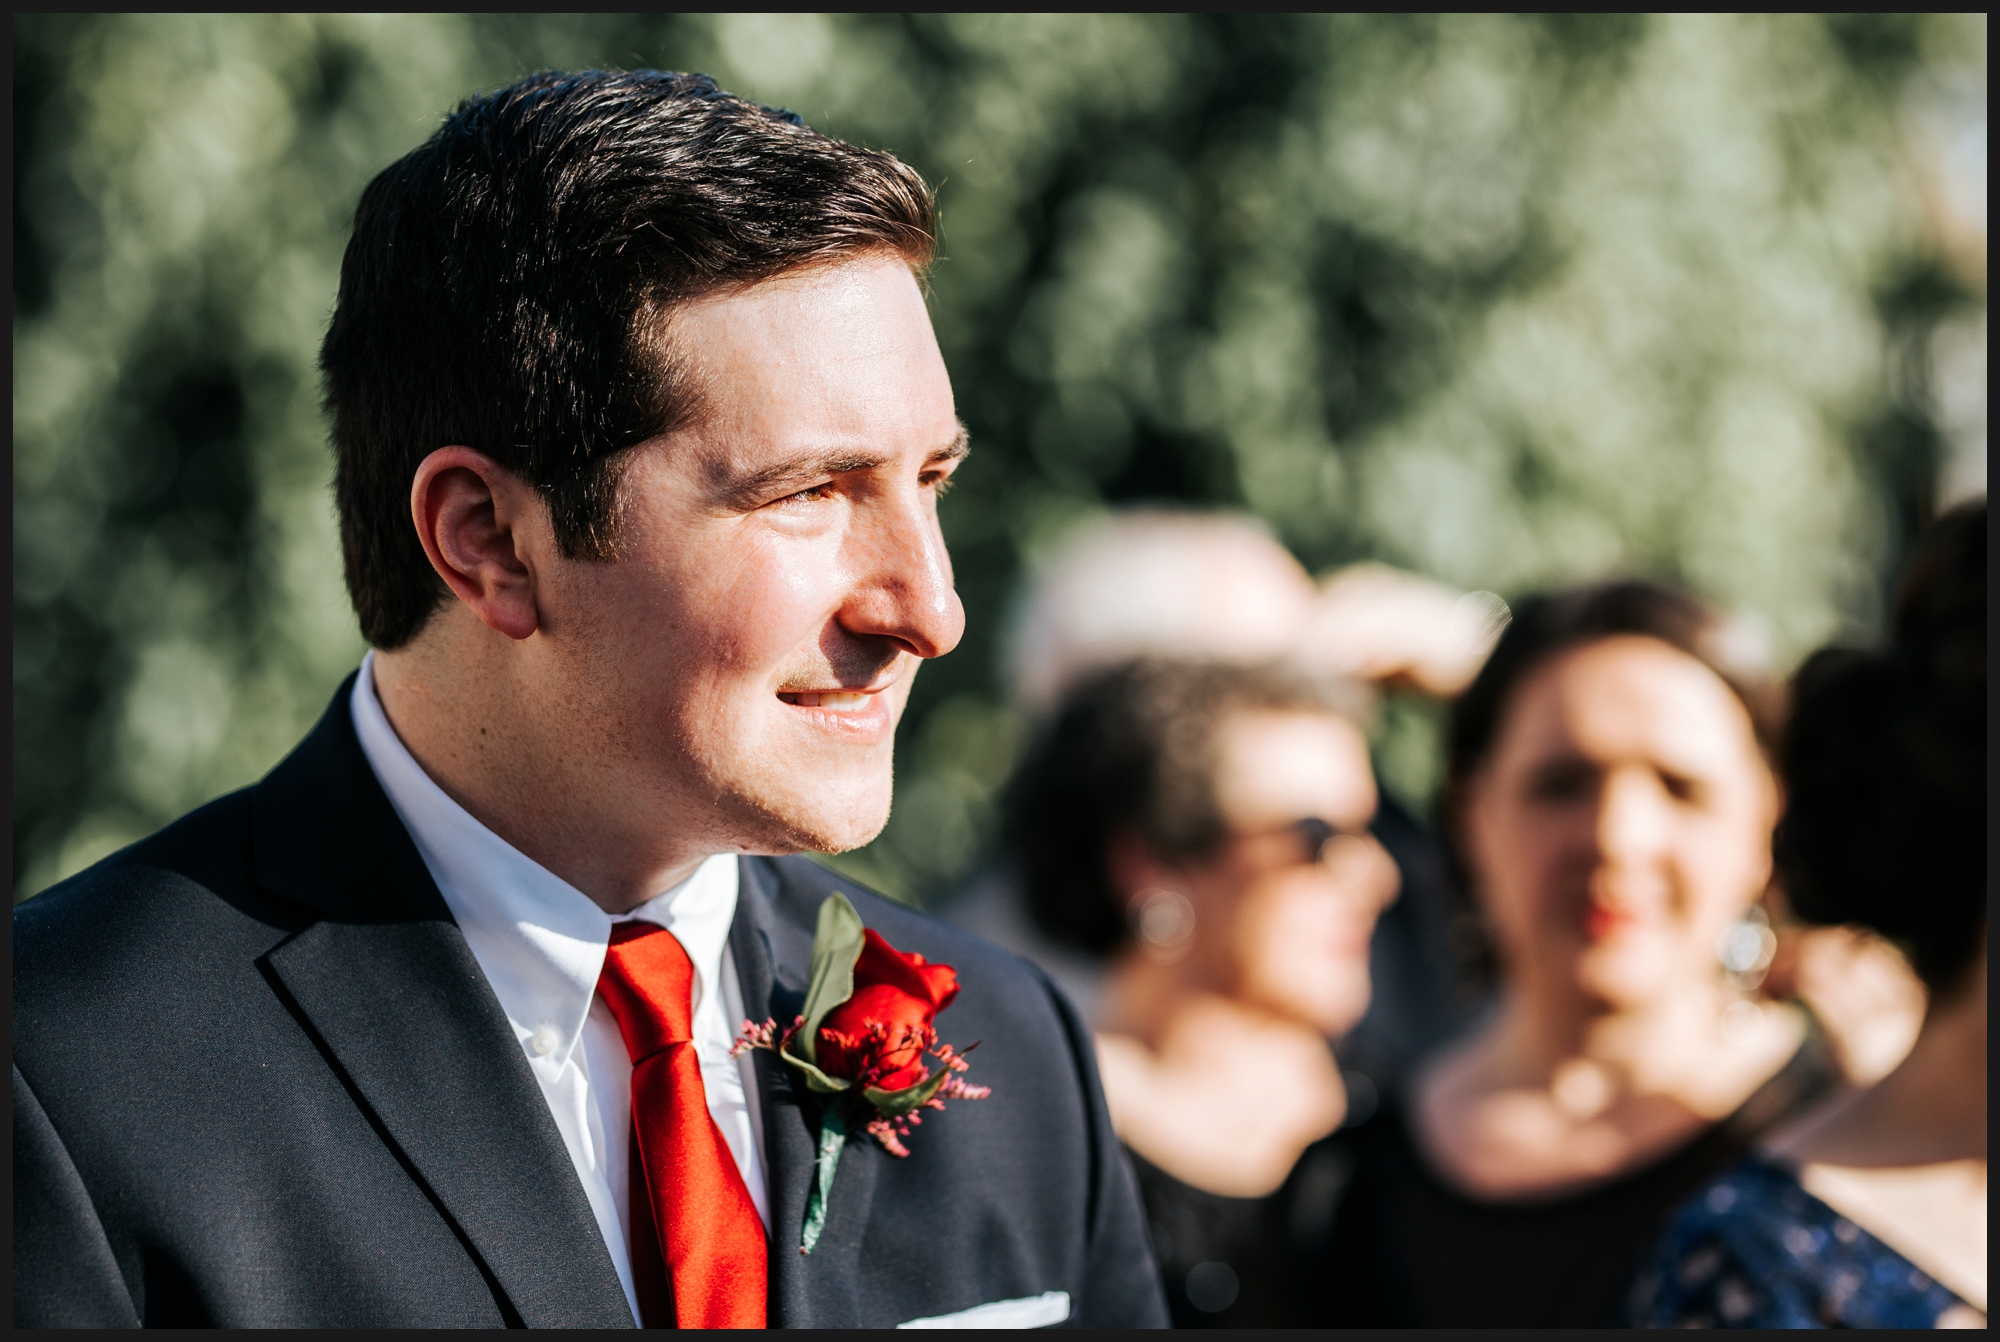 MitchandKatieOrlandoWeddingPhotographer_0060.jpg